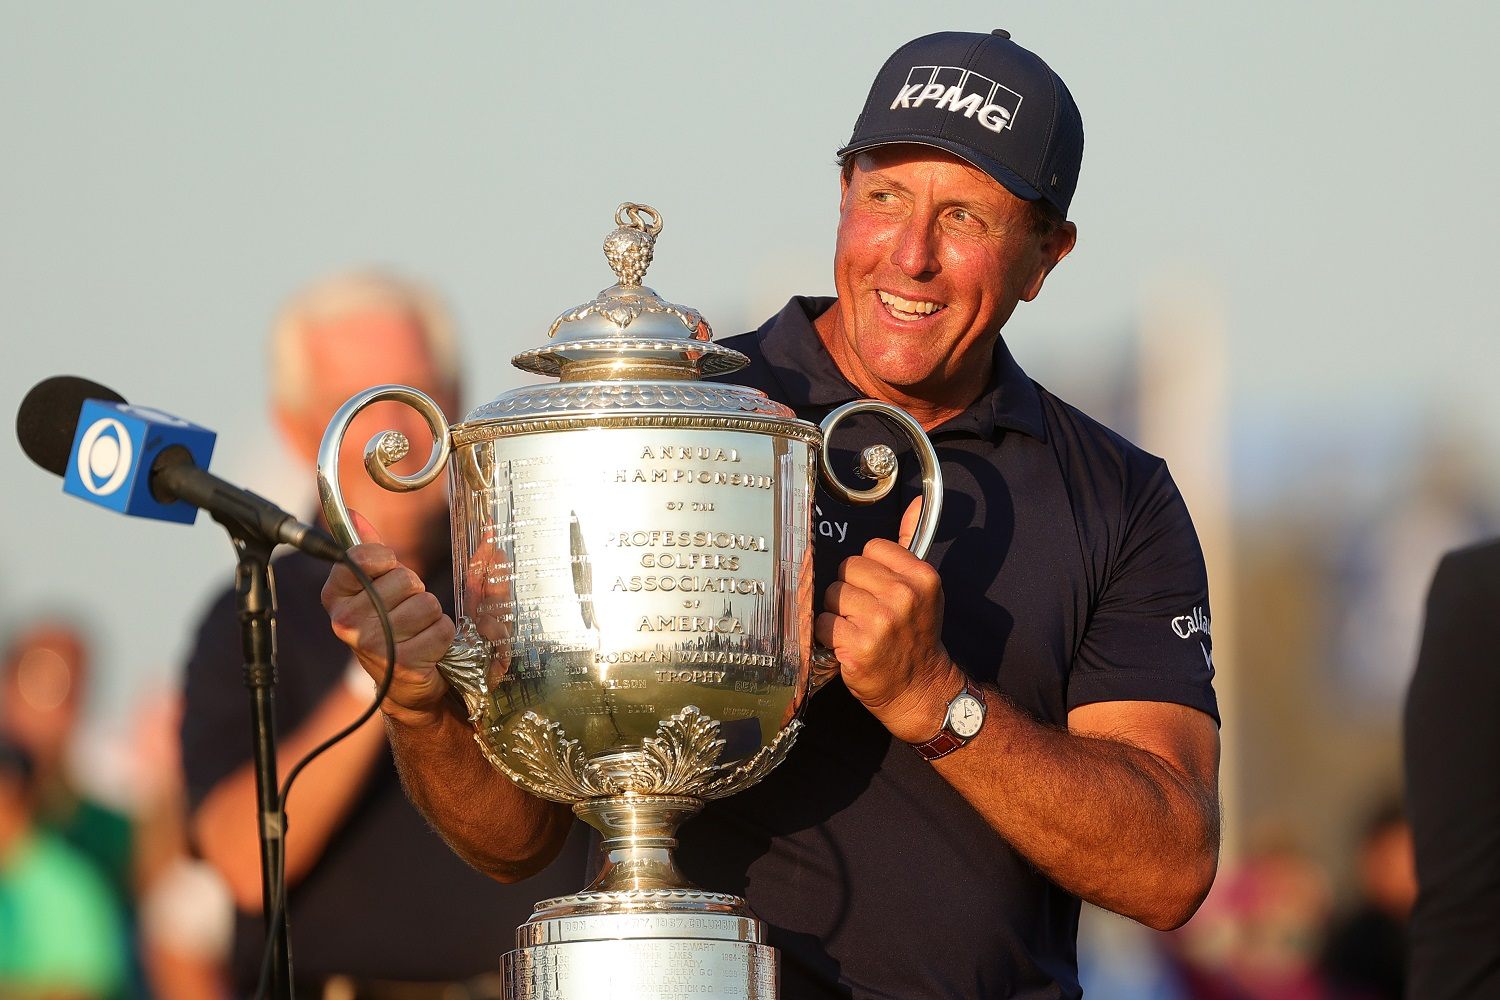 Phil Mickelson celebrates with the Wanamaker Trophy after winning the PGA Championship held at the Ocean Course of Kiawah Island Golf Resort in South Carolina. | Photo by Stacy Revere/Getty Images